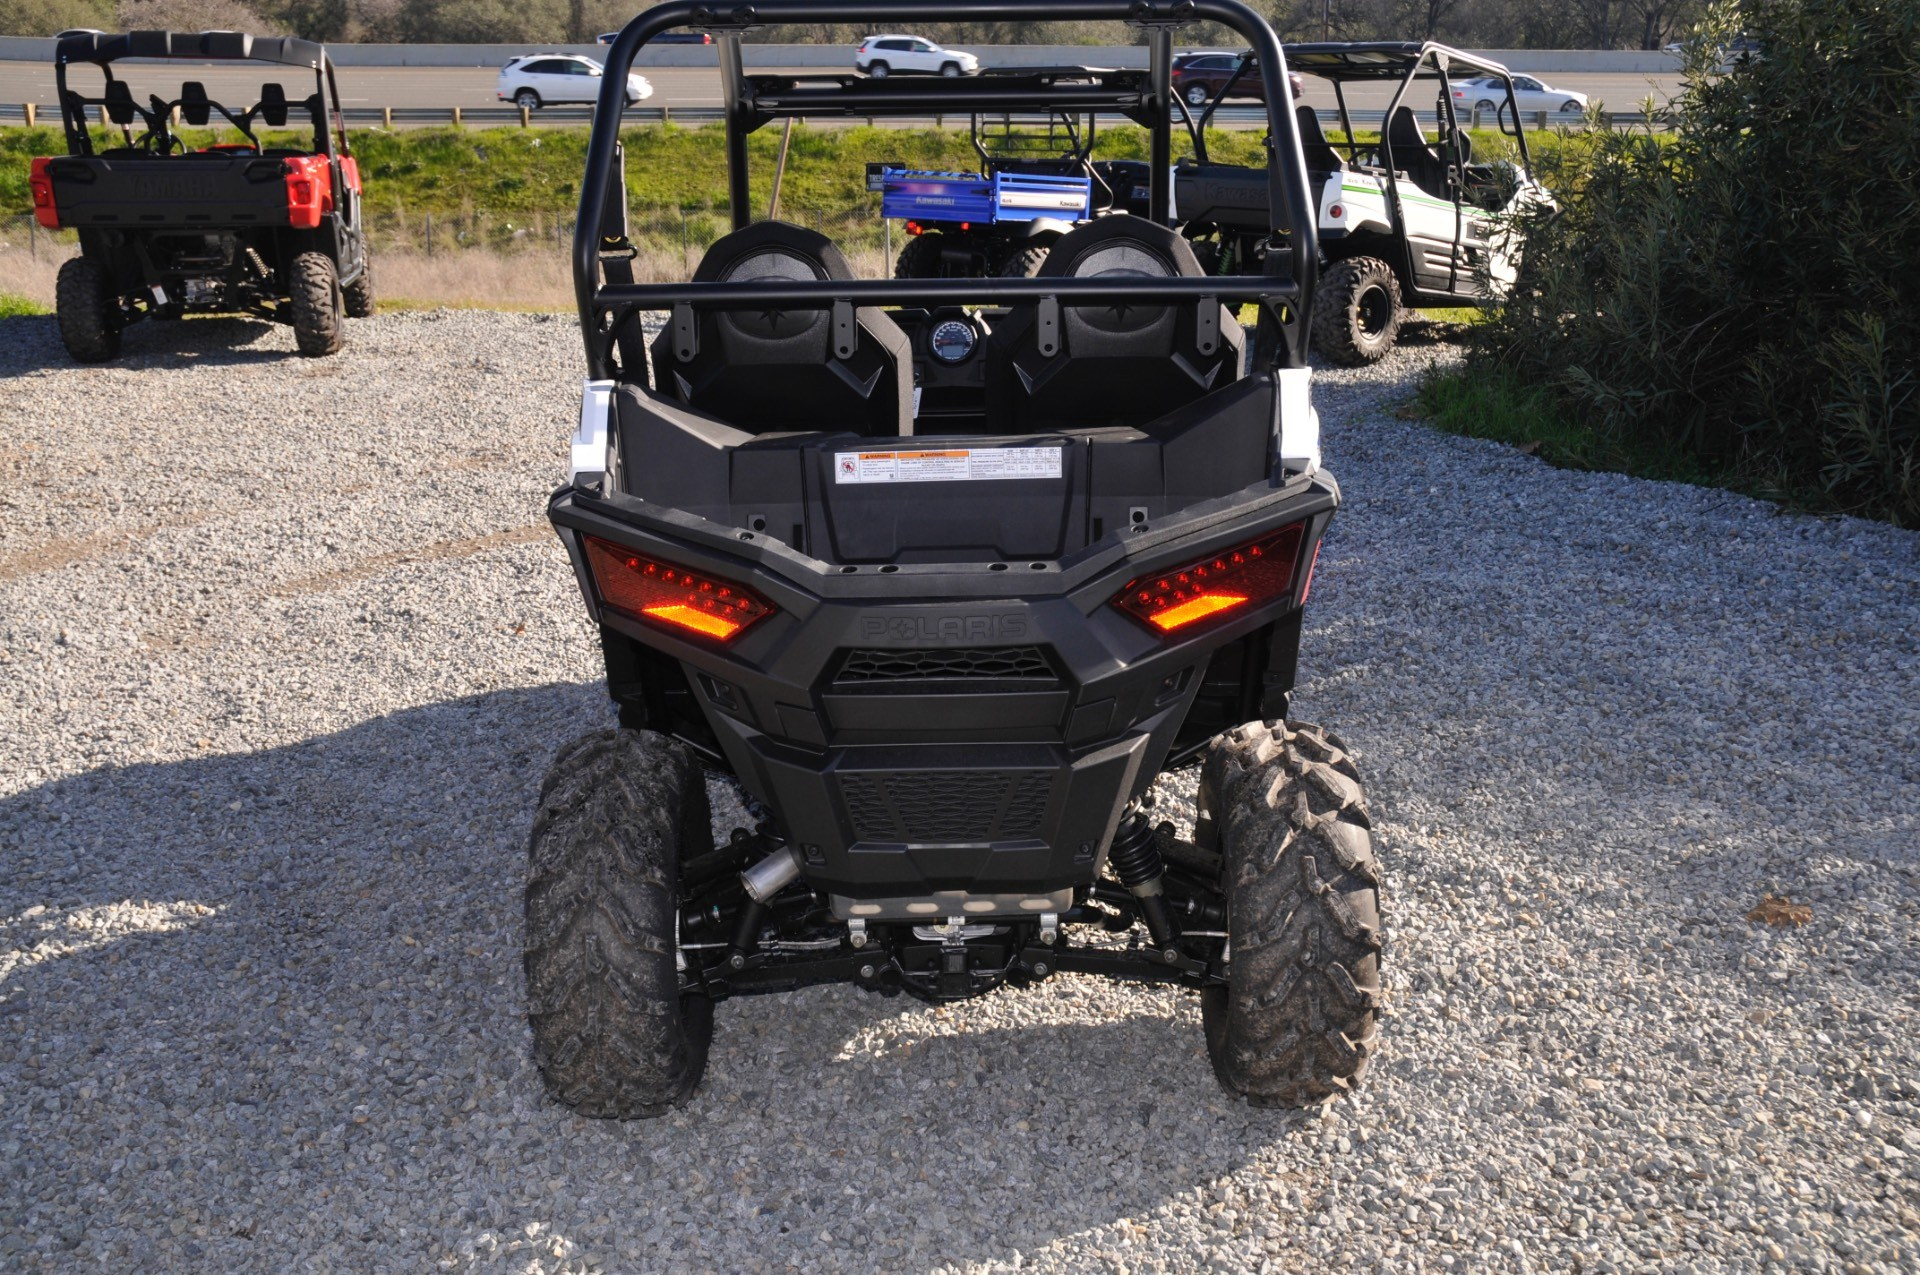 2017 Polaris RZR 900 in Roseville, California